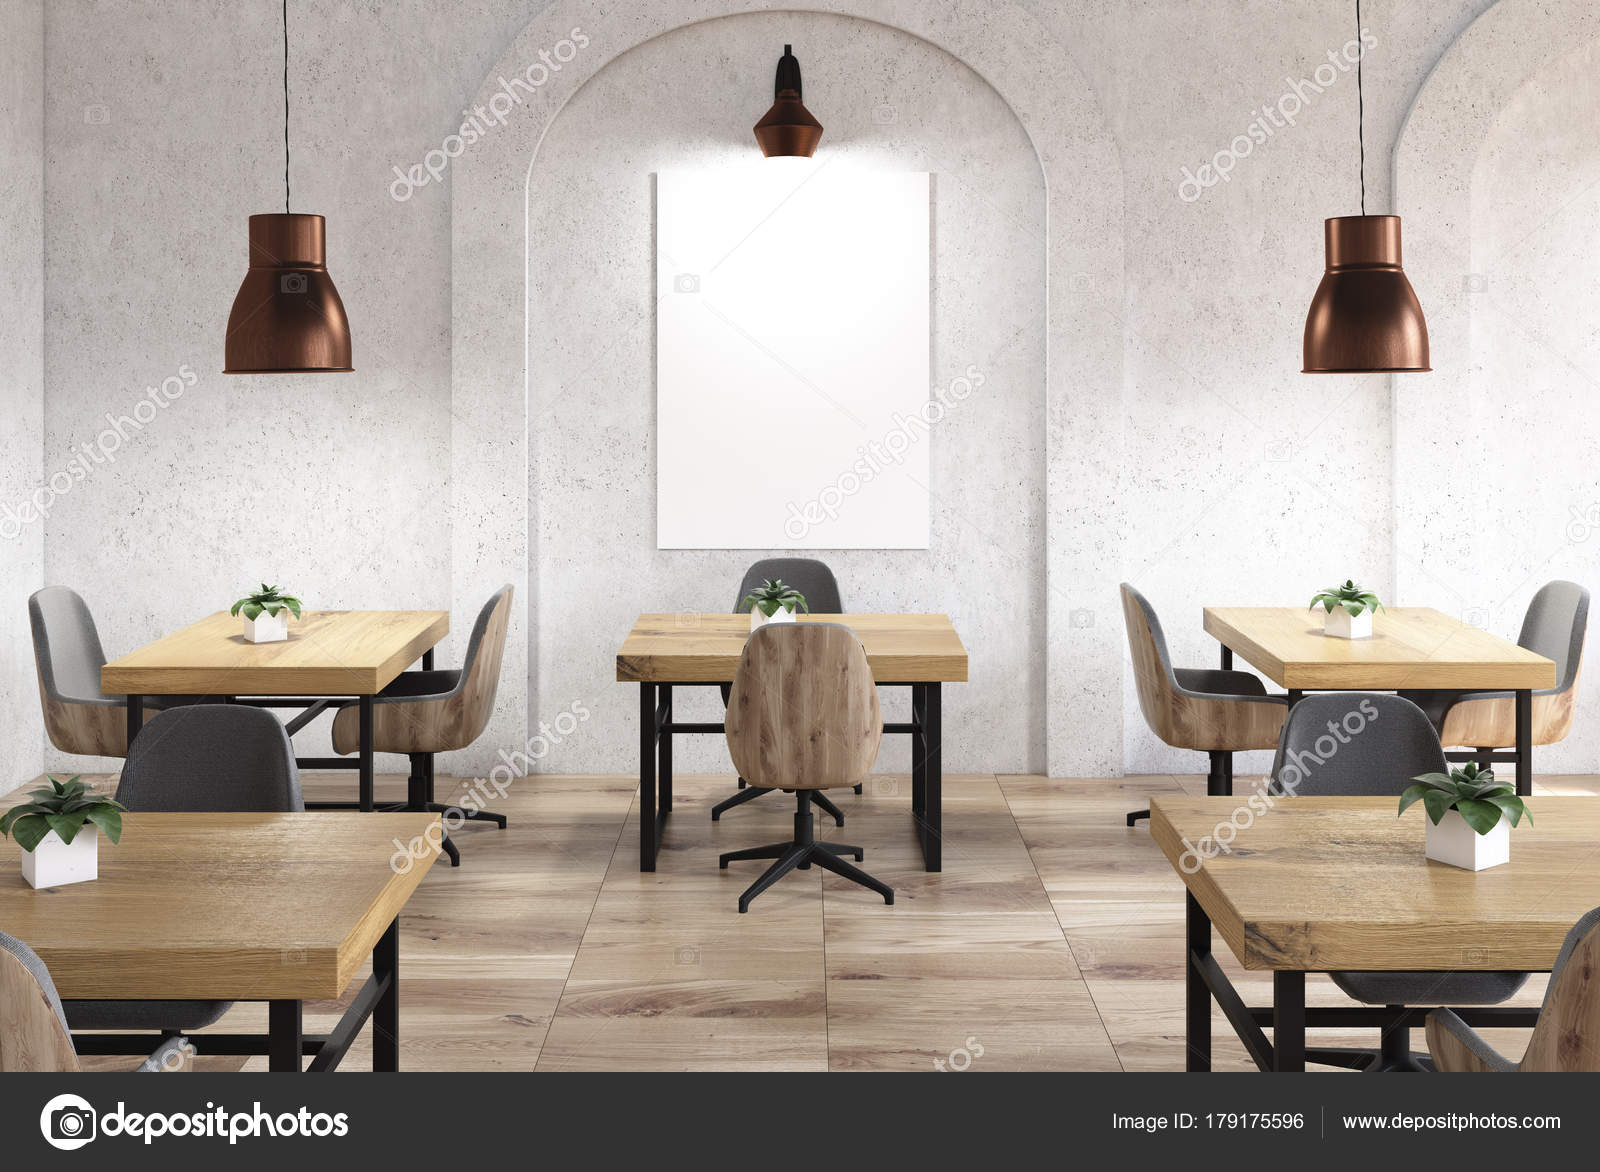 concrete cafe interior with a wooden floor tables and chairs arch like windows a poster 3d rendering mock up photo by denisismagilov - Concrete Cafe Interior